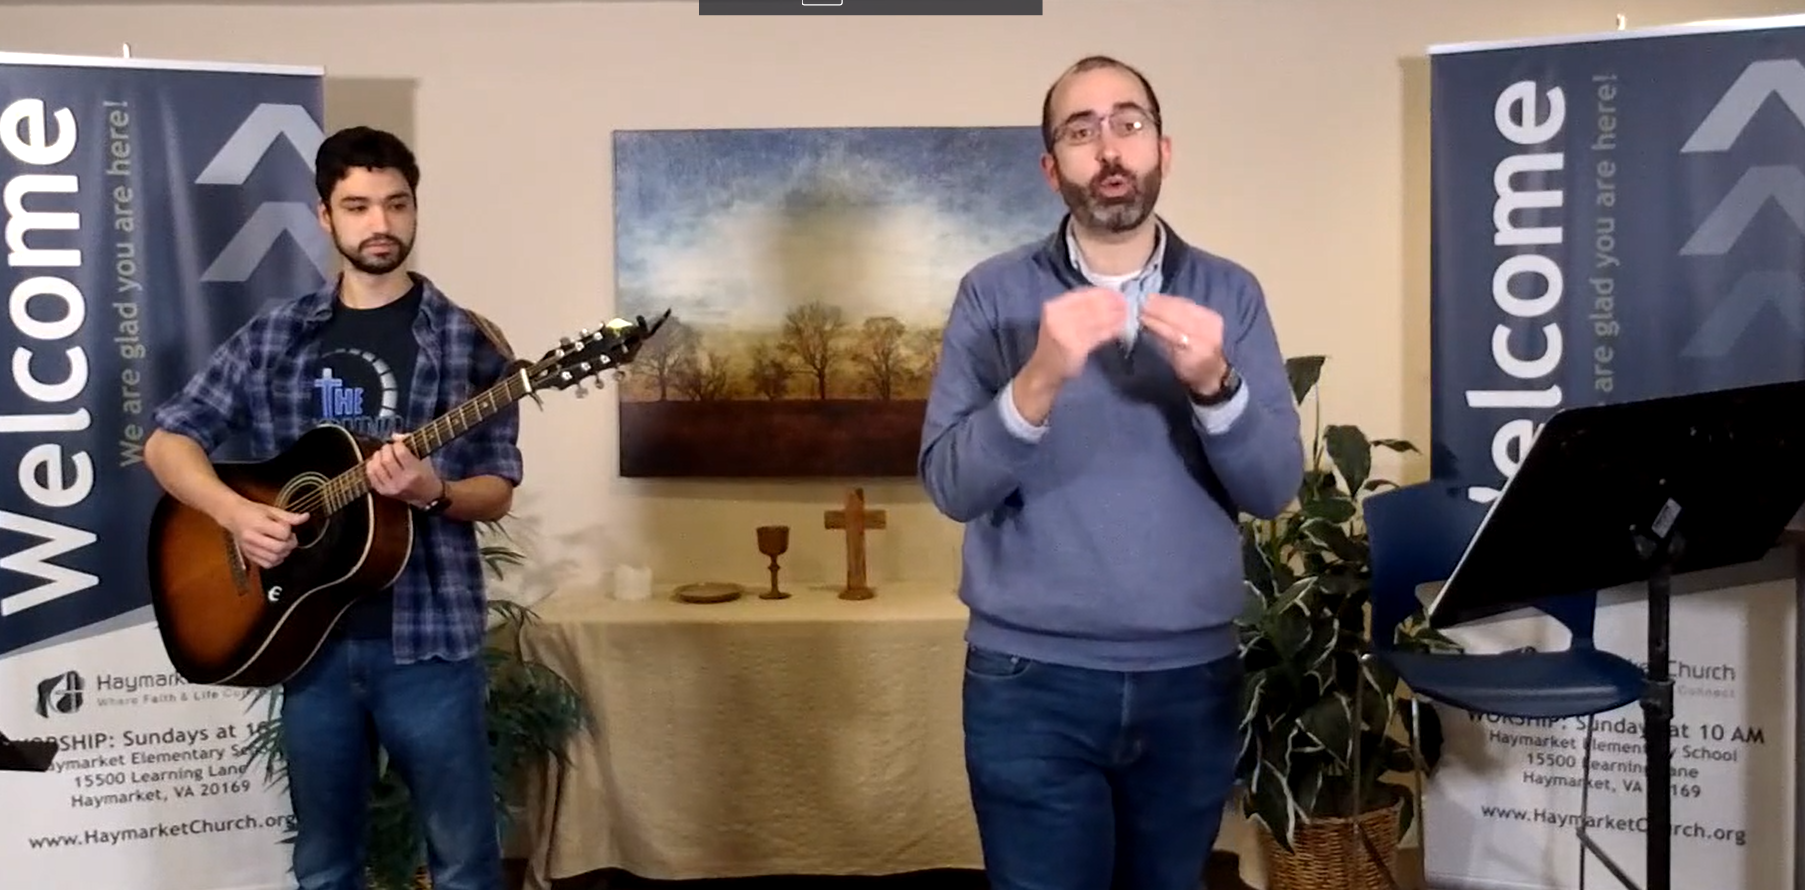 guitarist and pastor leading worship